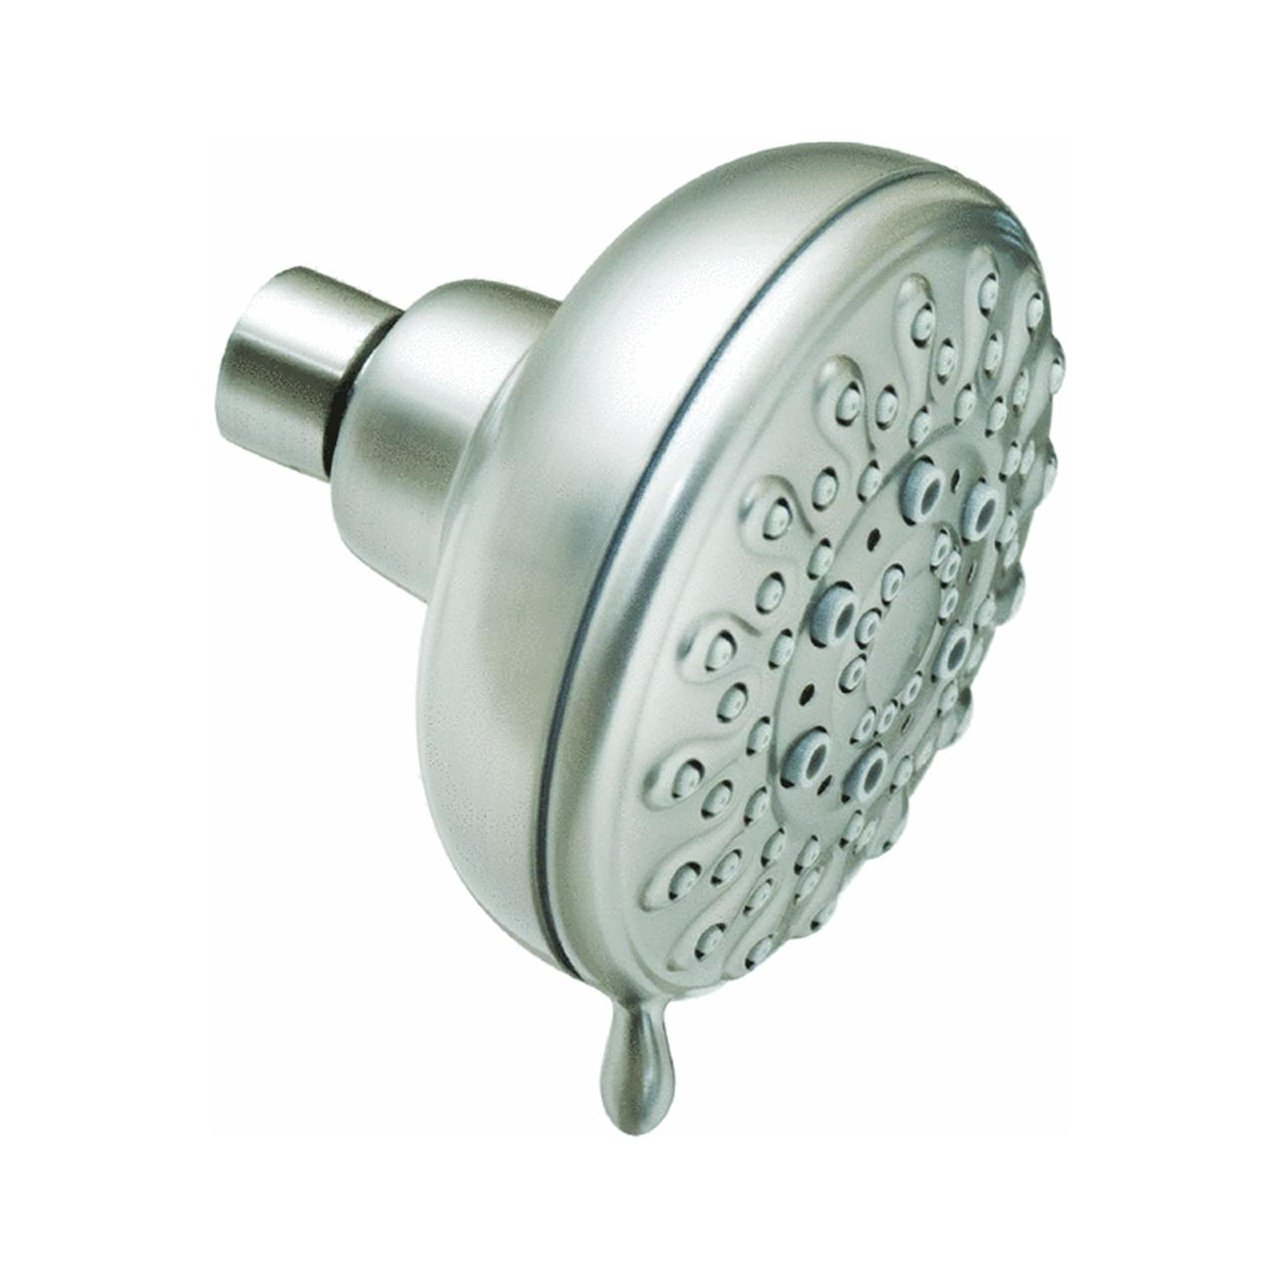 Moen 23016 2.5 GPM Multi Function Shower Head, Chrome   Fixed Showerheads    Amazon.com